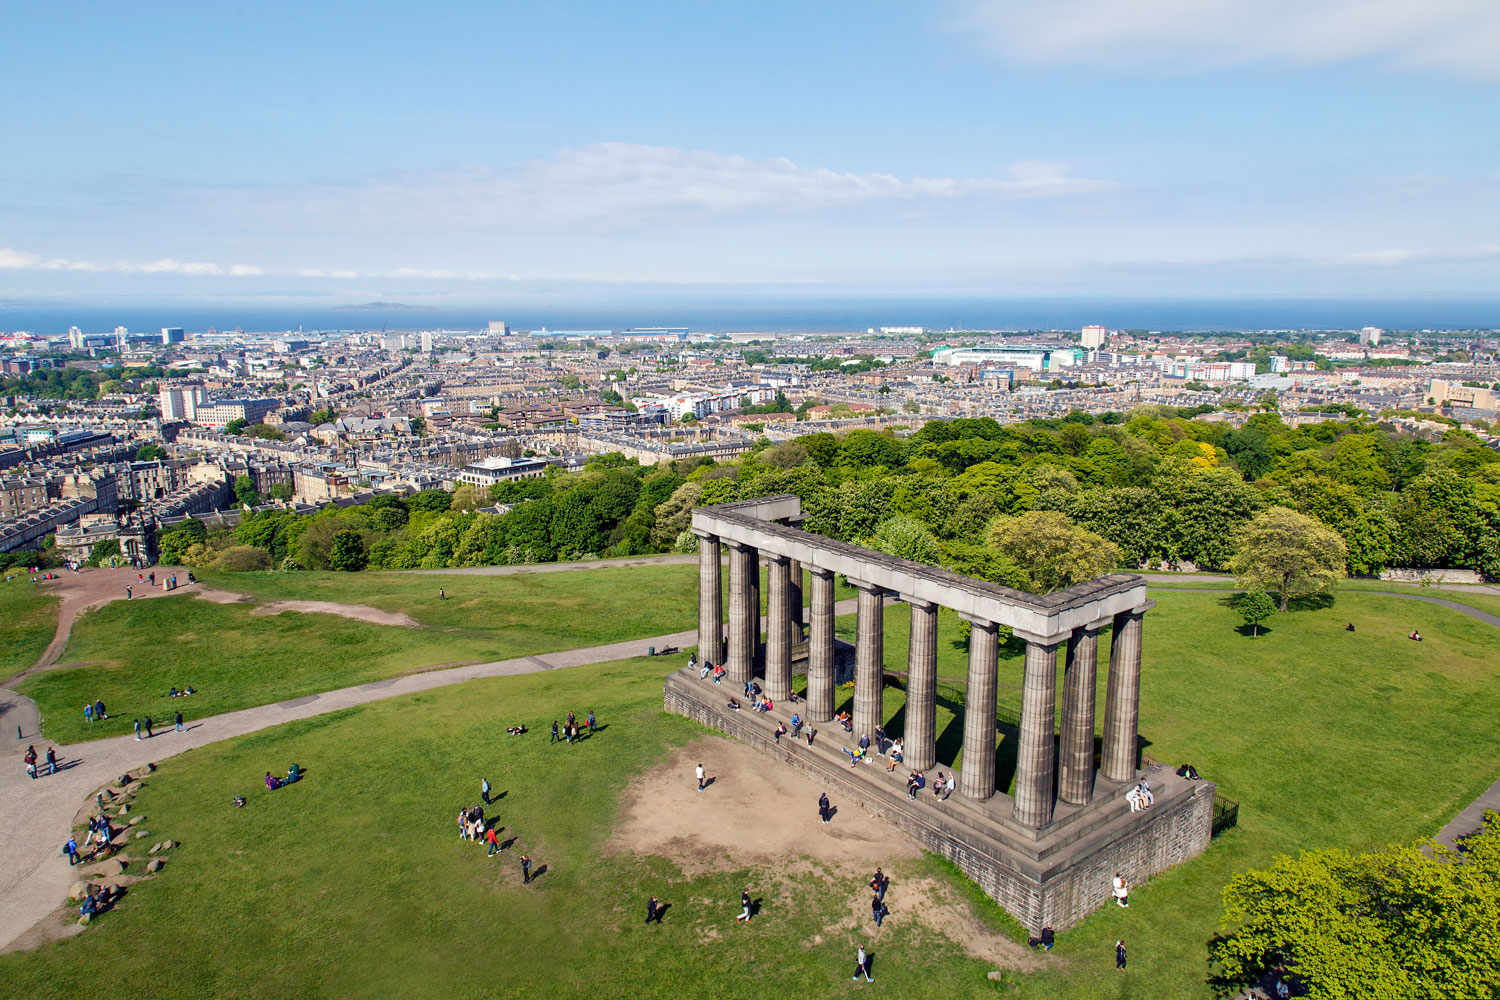 Bird's eye view of Calton Hill